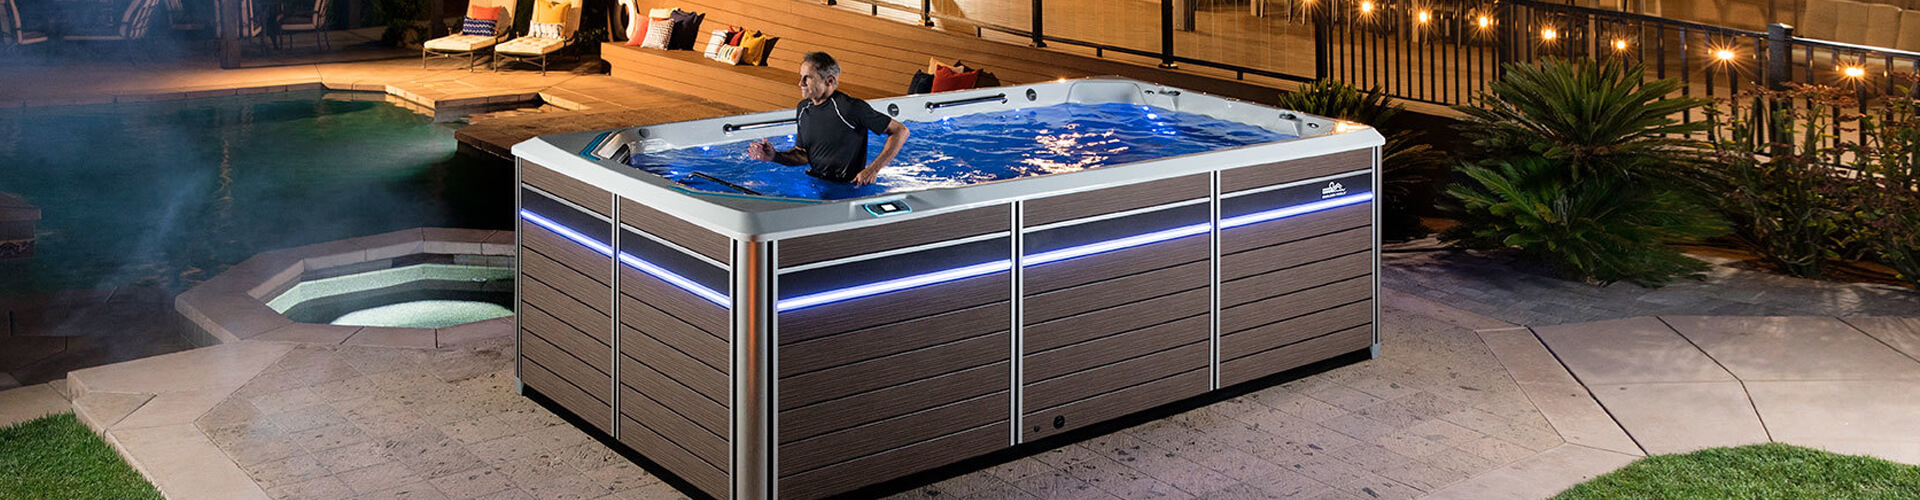 Sedona Swim Spas Can Help Relieve Chronic Aches and Pains